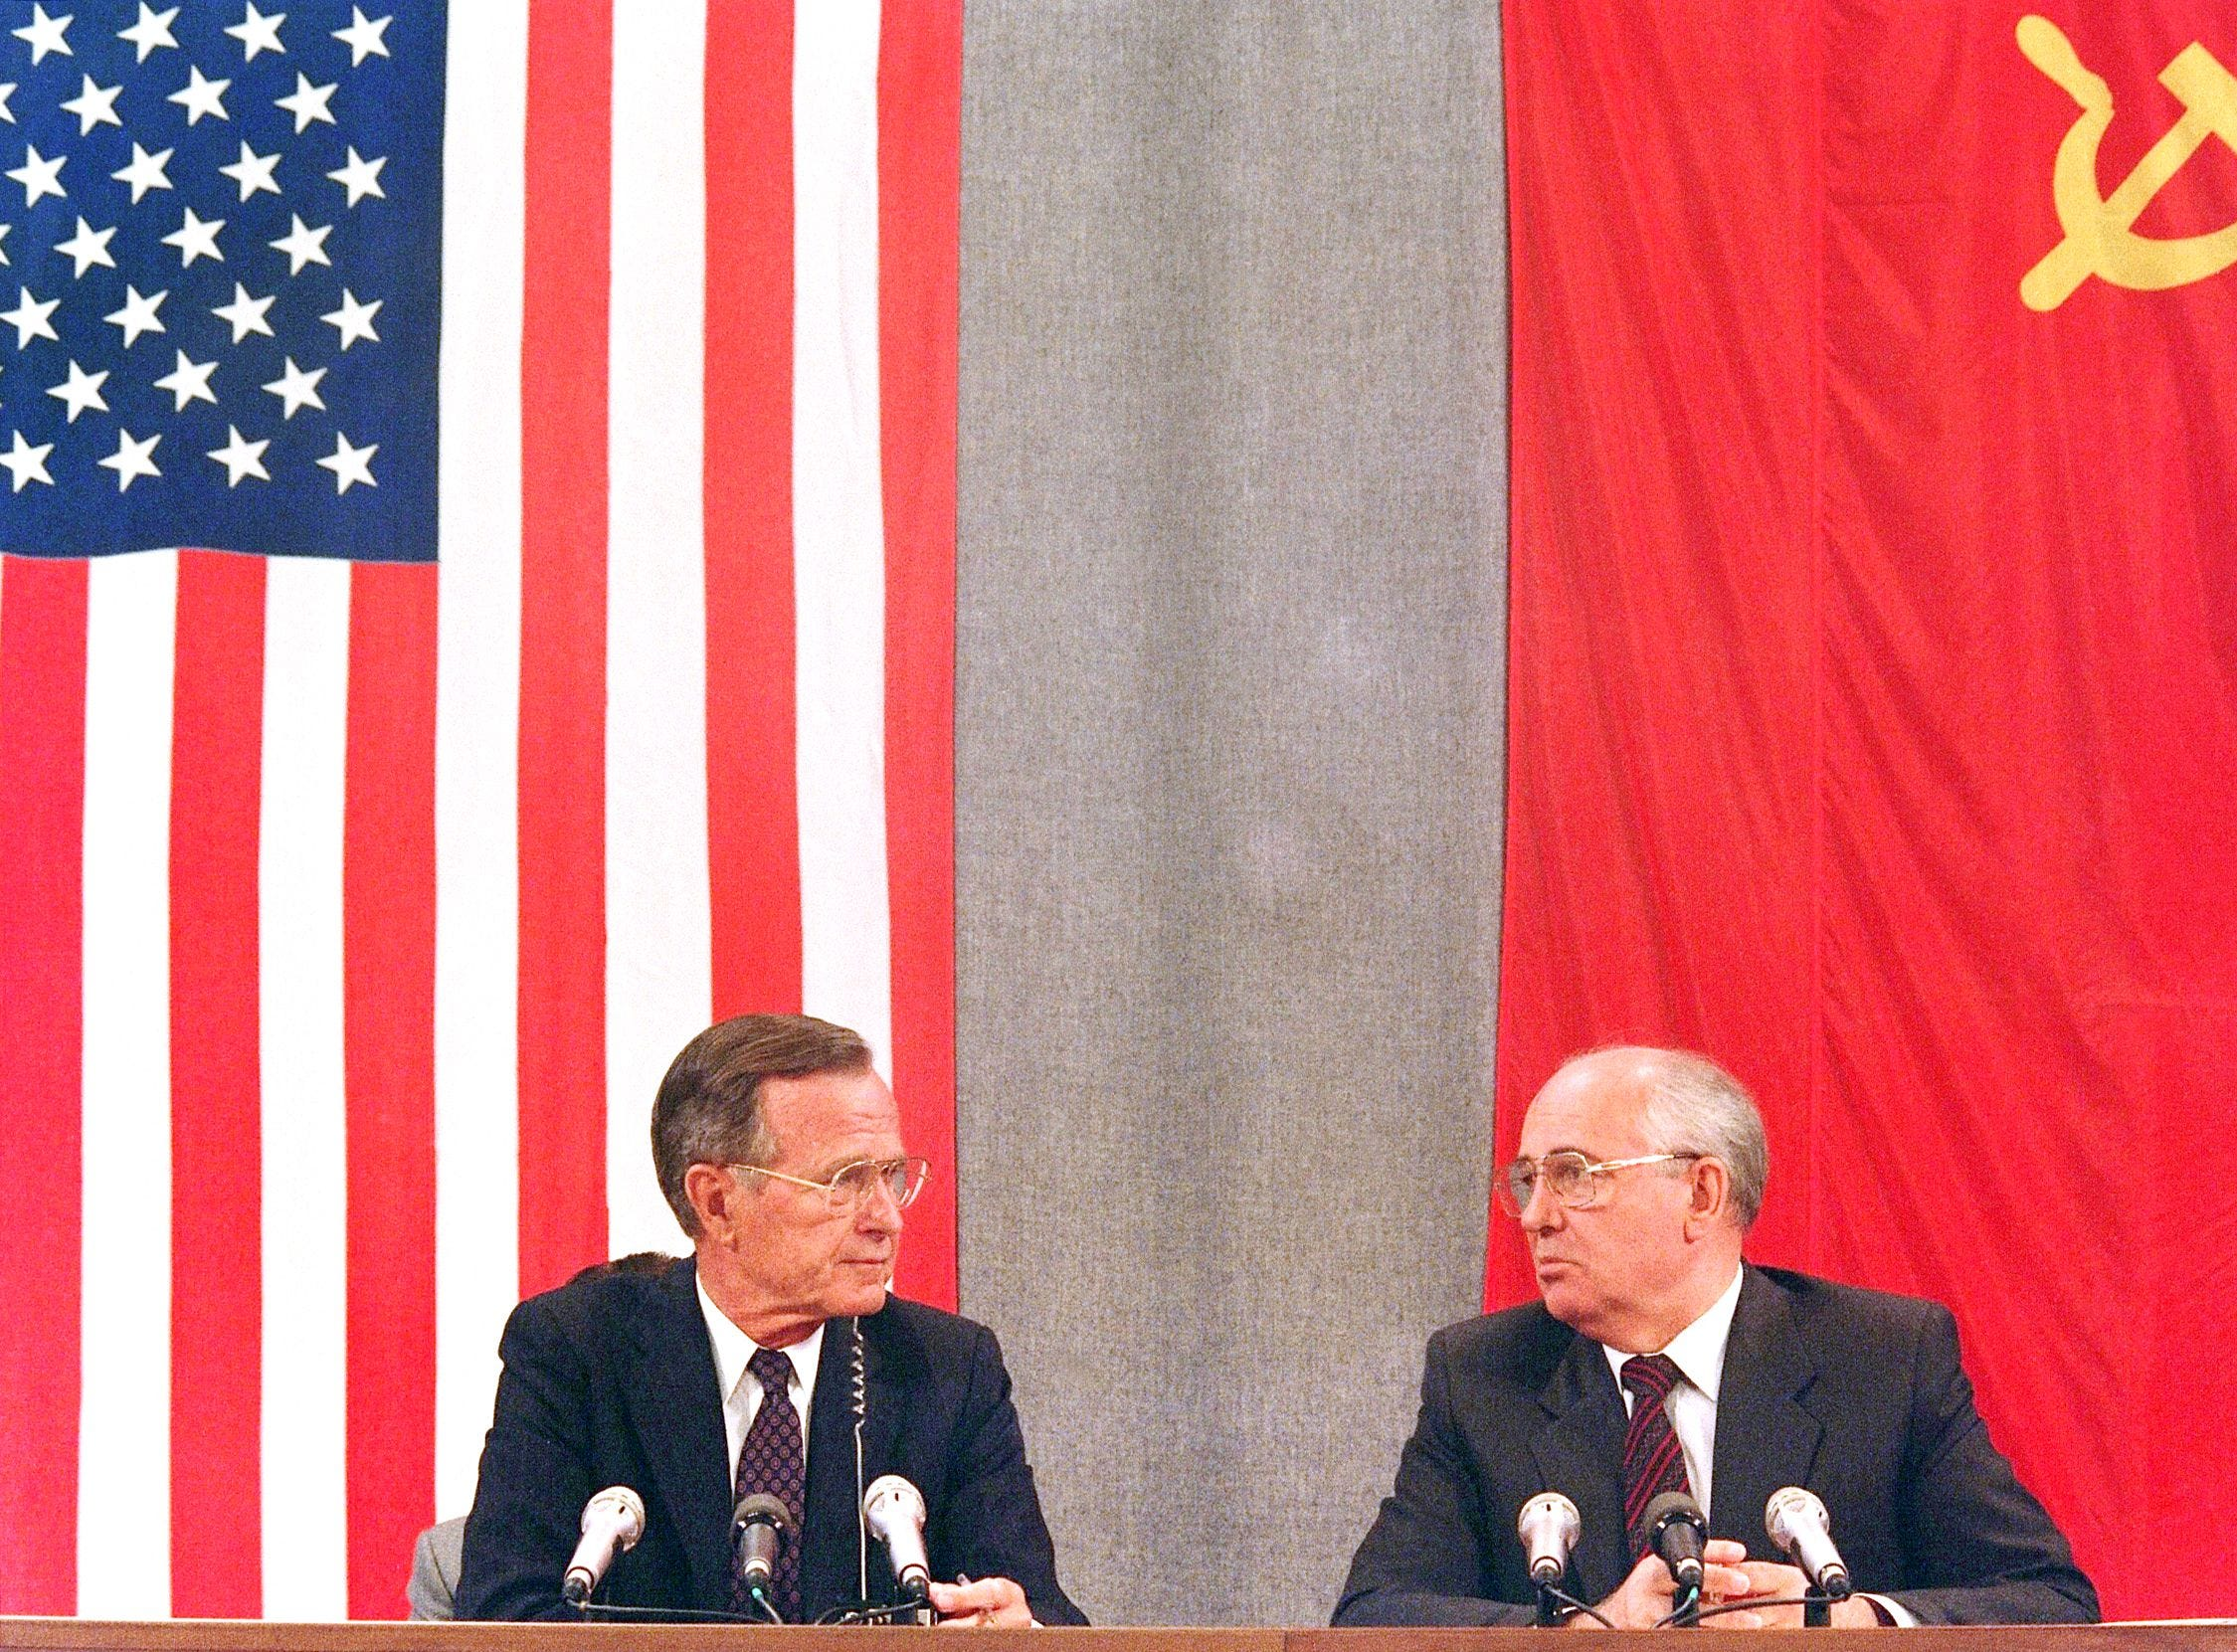 George H.W. Bush's legacy: A prudent president at ease on choppy seas of foreign policy